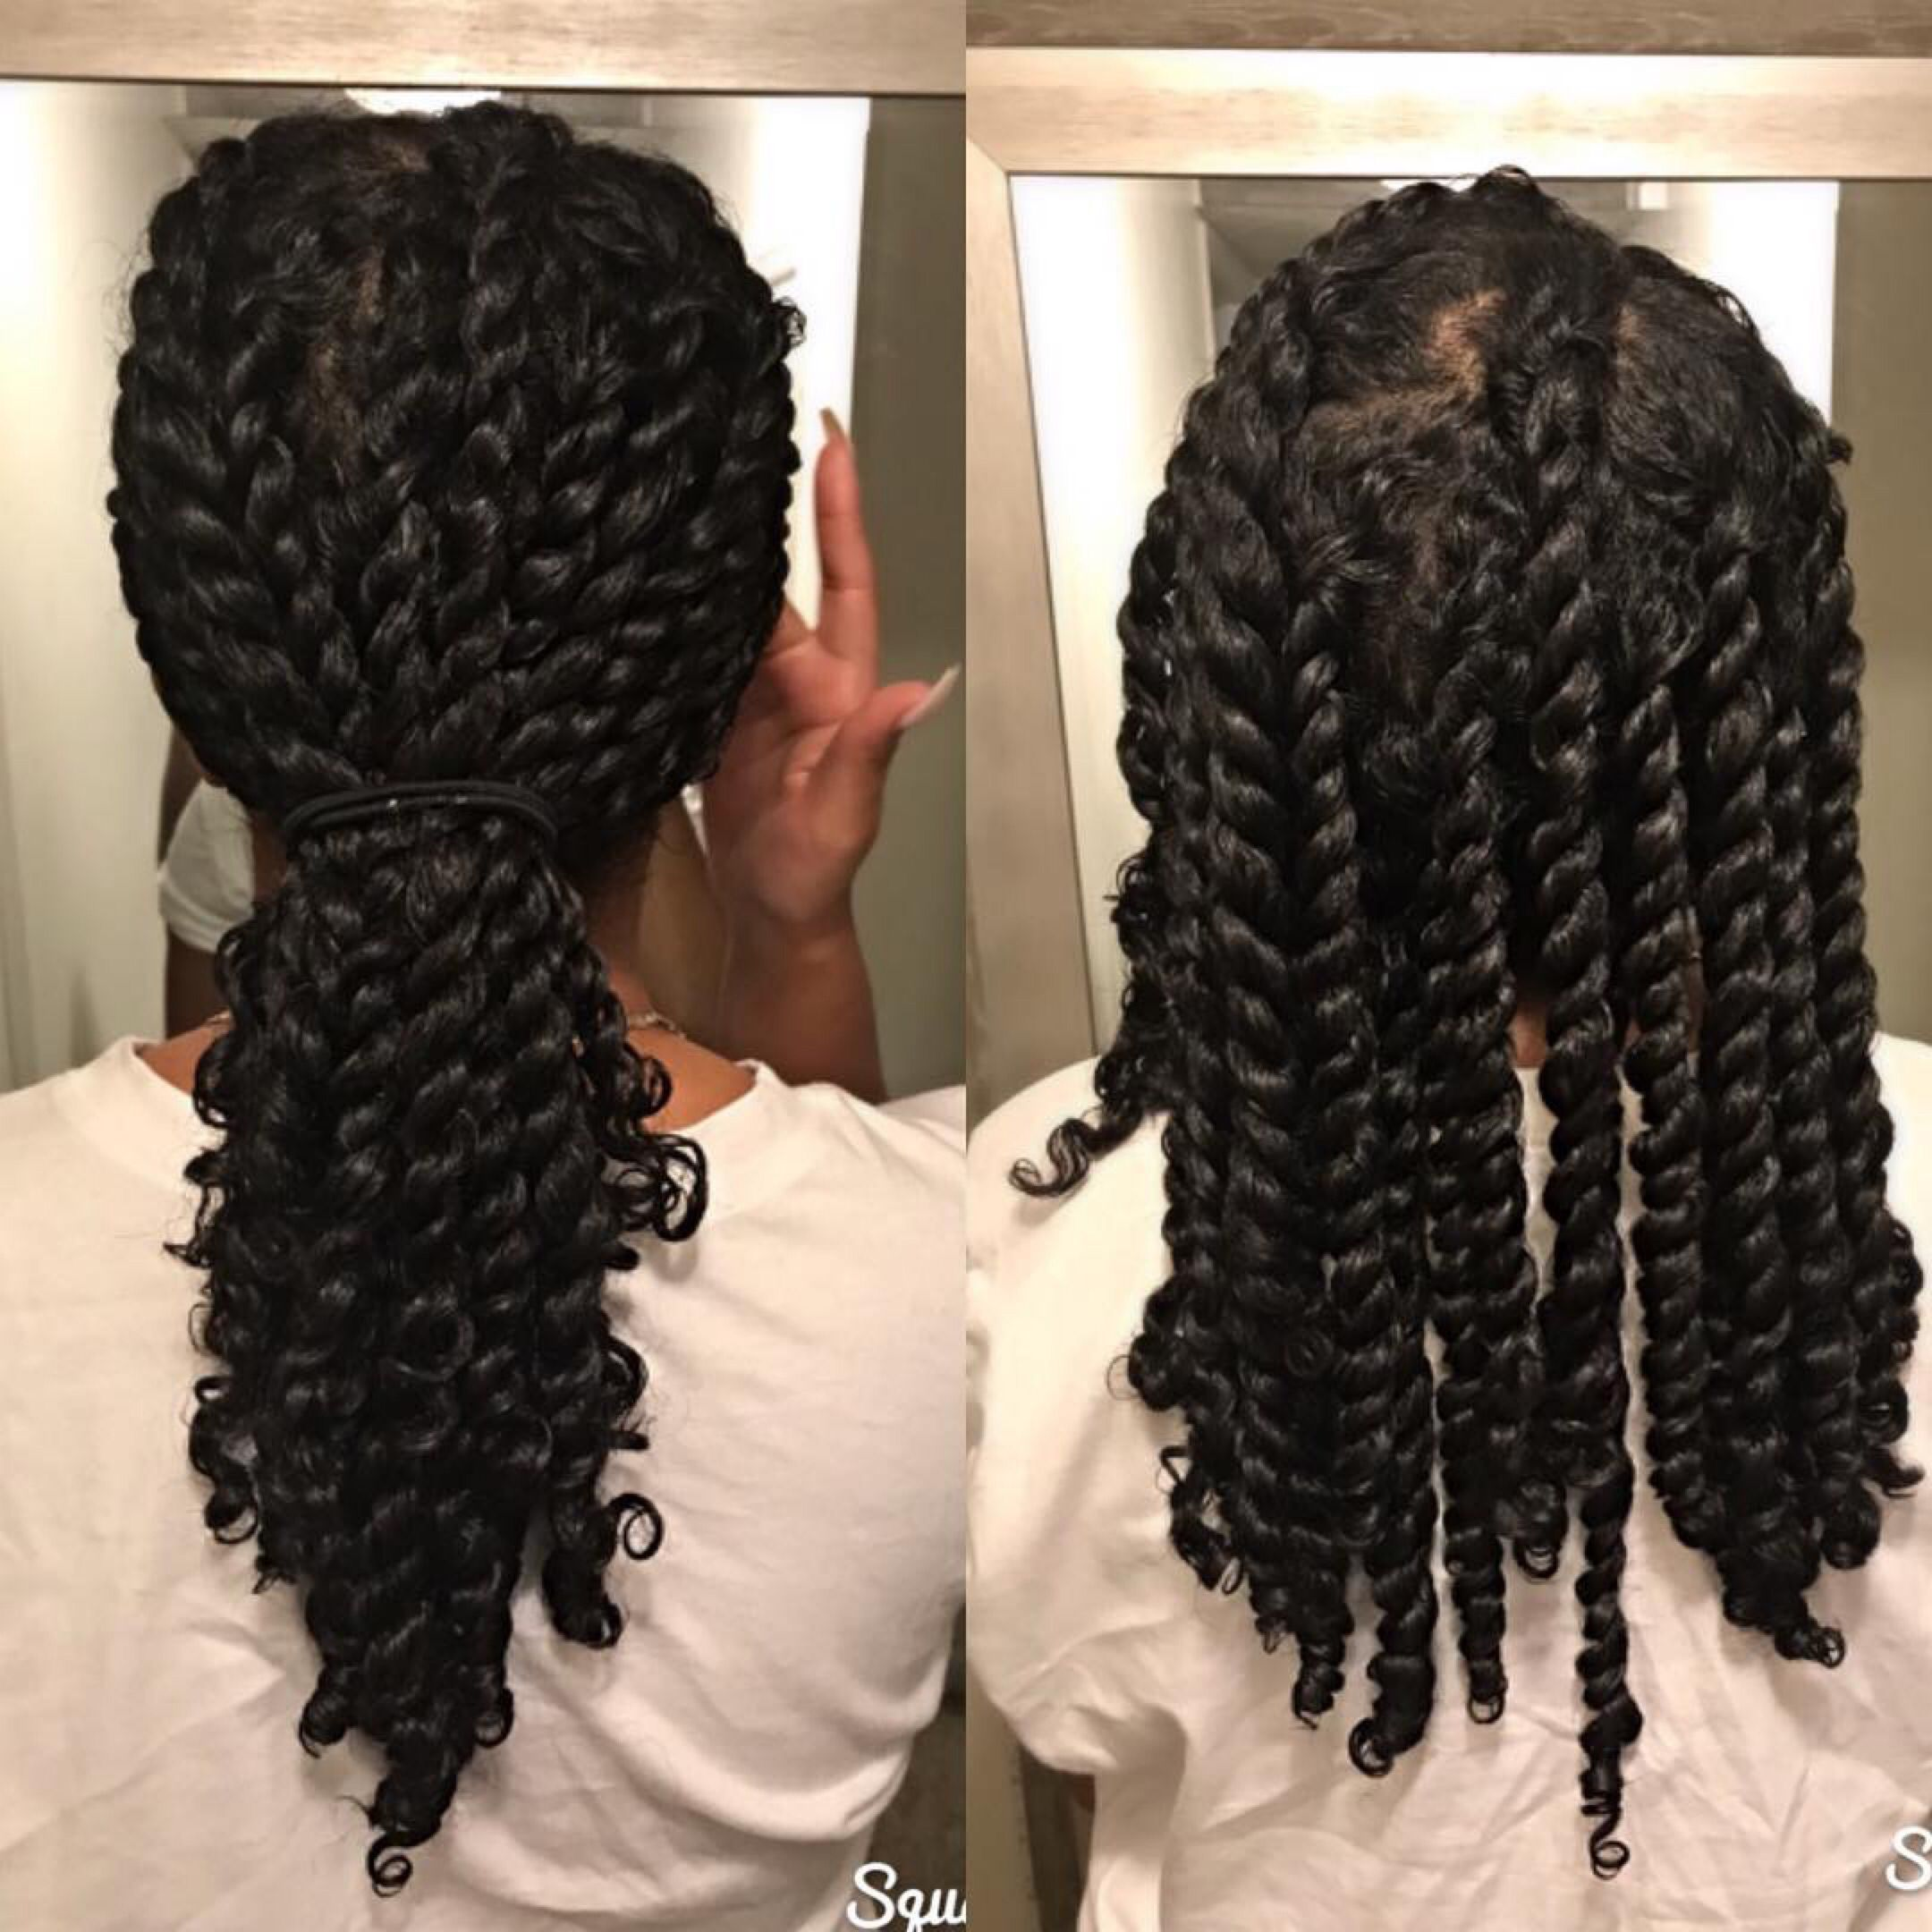 8 Super Cute Protective Styles For Winter Protective Hairstyles For Natural Hair Long Natural Hair Natural Hair Twists